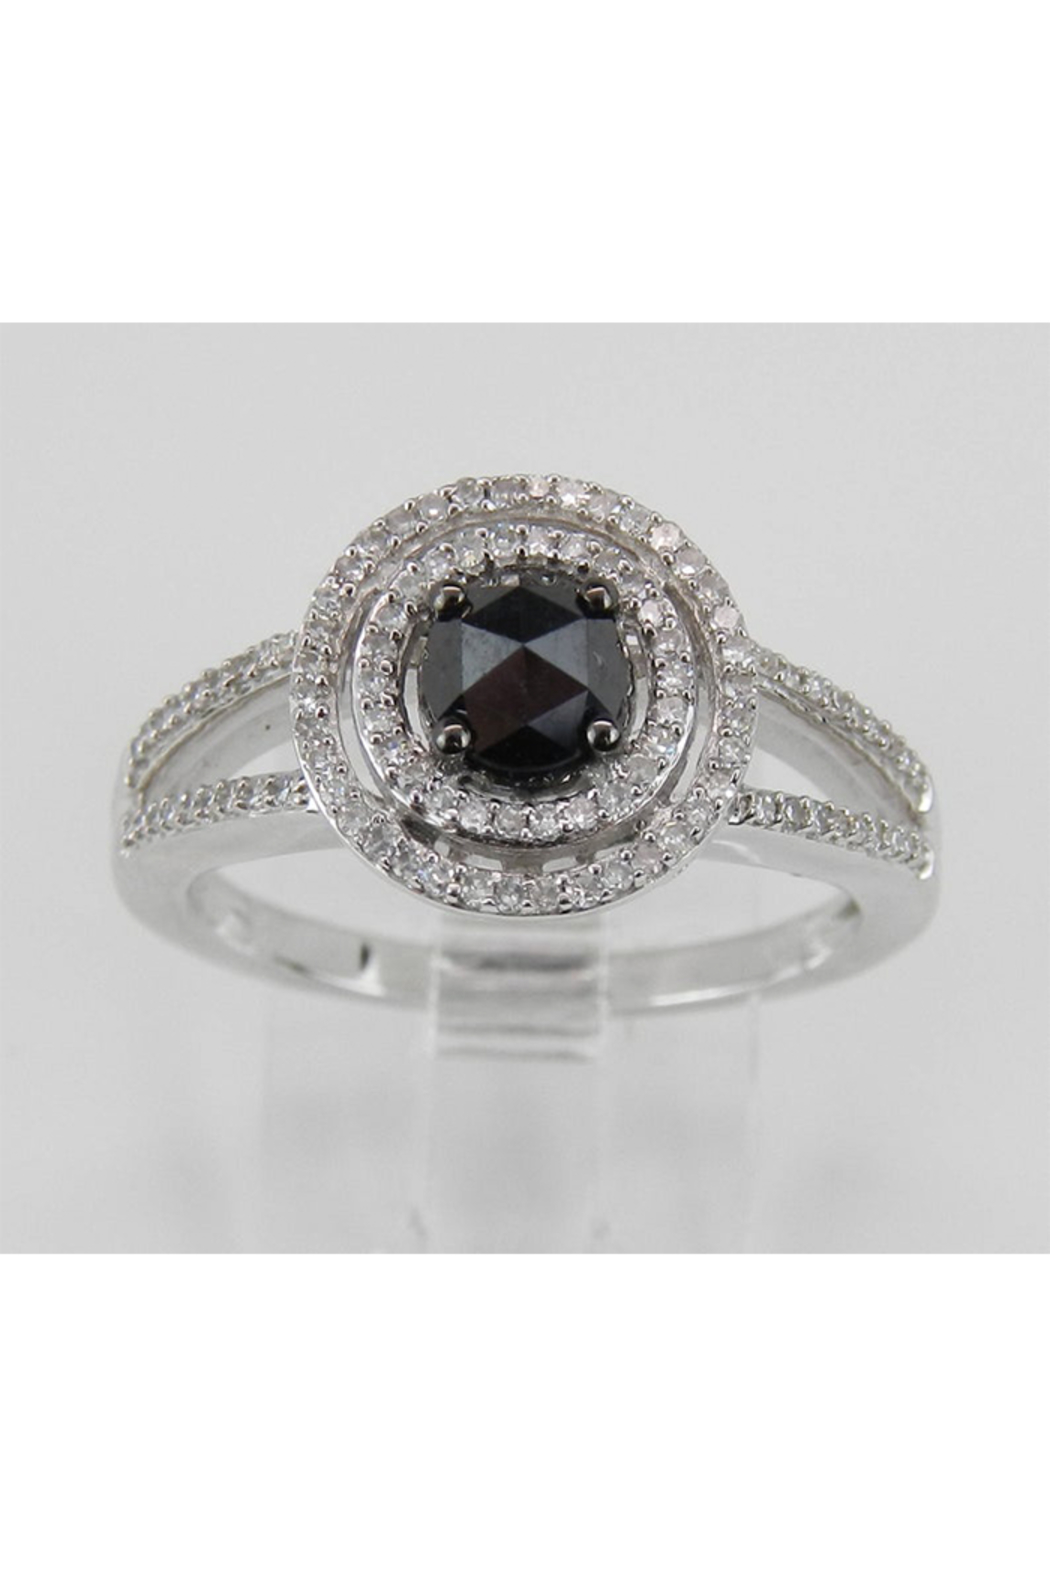 Margolin & Co White Gold Black Diamond Double Halo Engagement Ring - Main Image